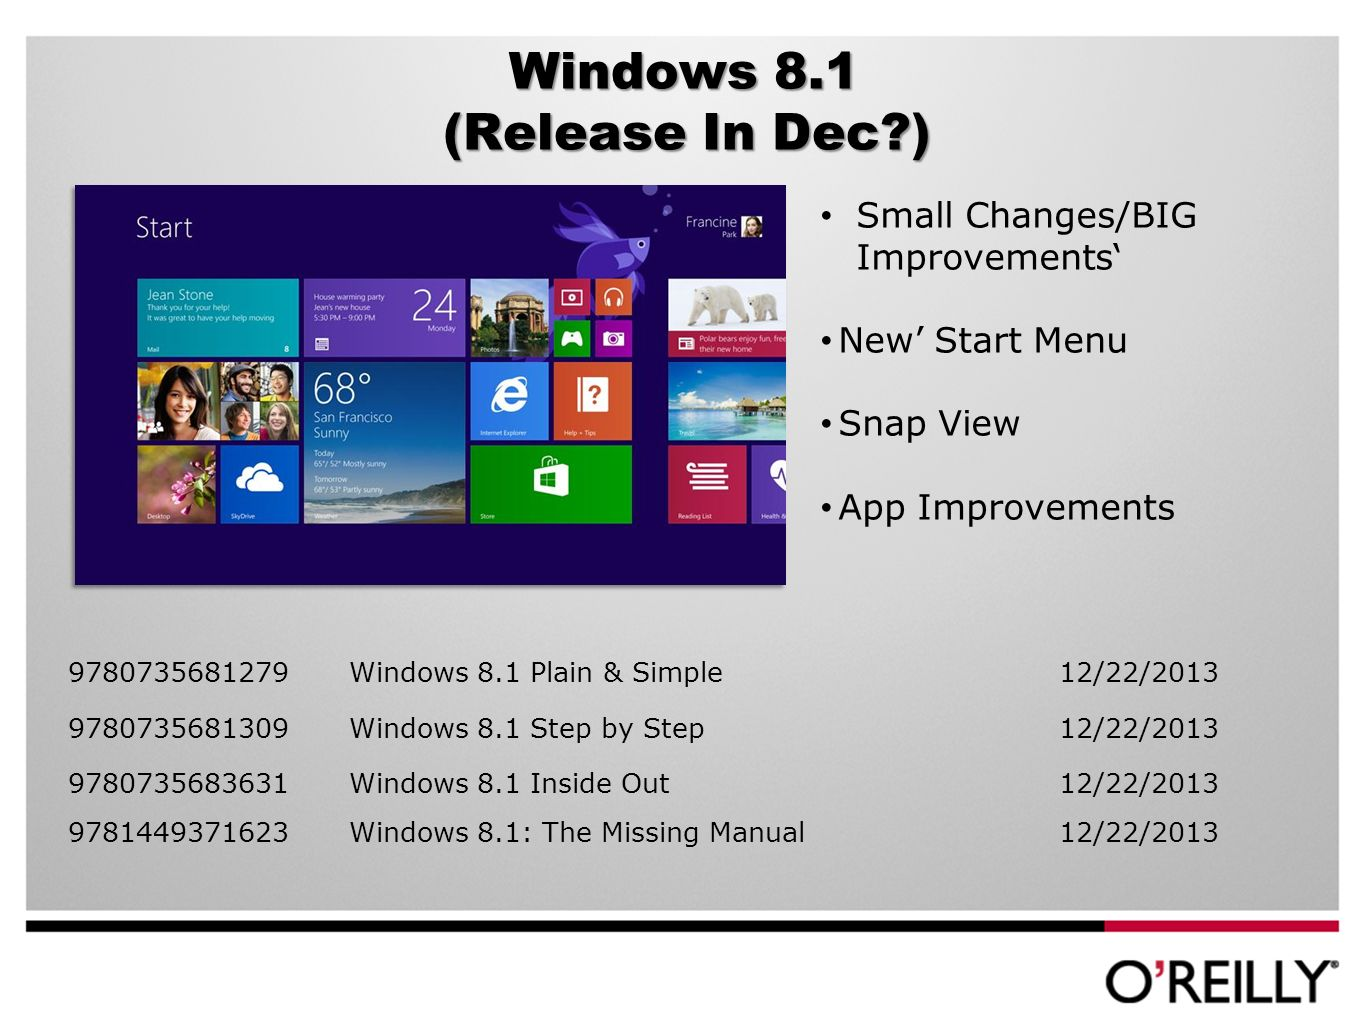 Windows 8.1 (Release In Dec ) Small Changes/BIG Improvements New Start Menu Snap View App Improvements Windows 8.1 Plain & Simple12/22/ Windows 8.1 Step by Step12/22/ Windows 8.1 Inside Out12/22/ Windows 8.1: The Missing Manual12/22/2013